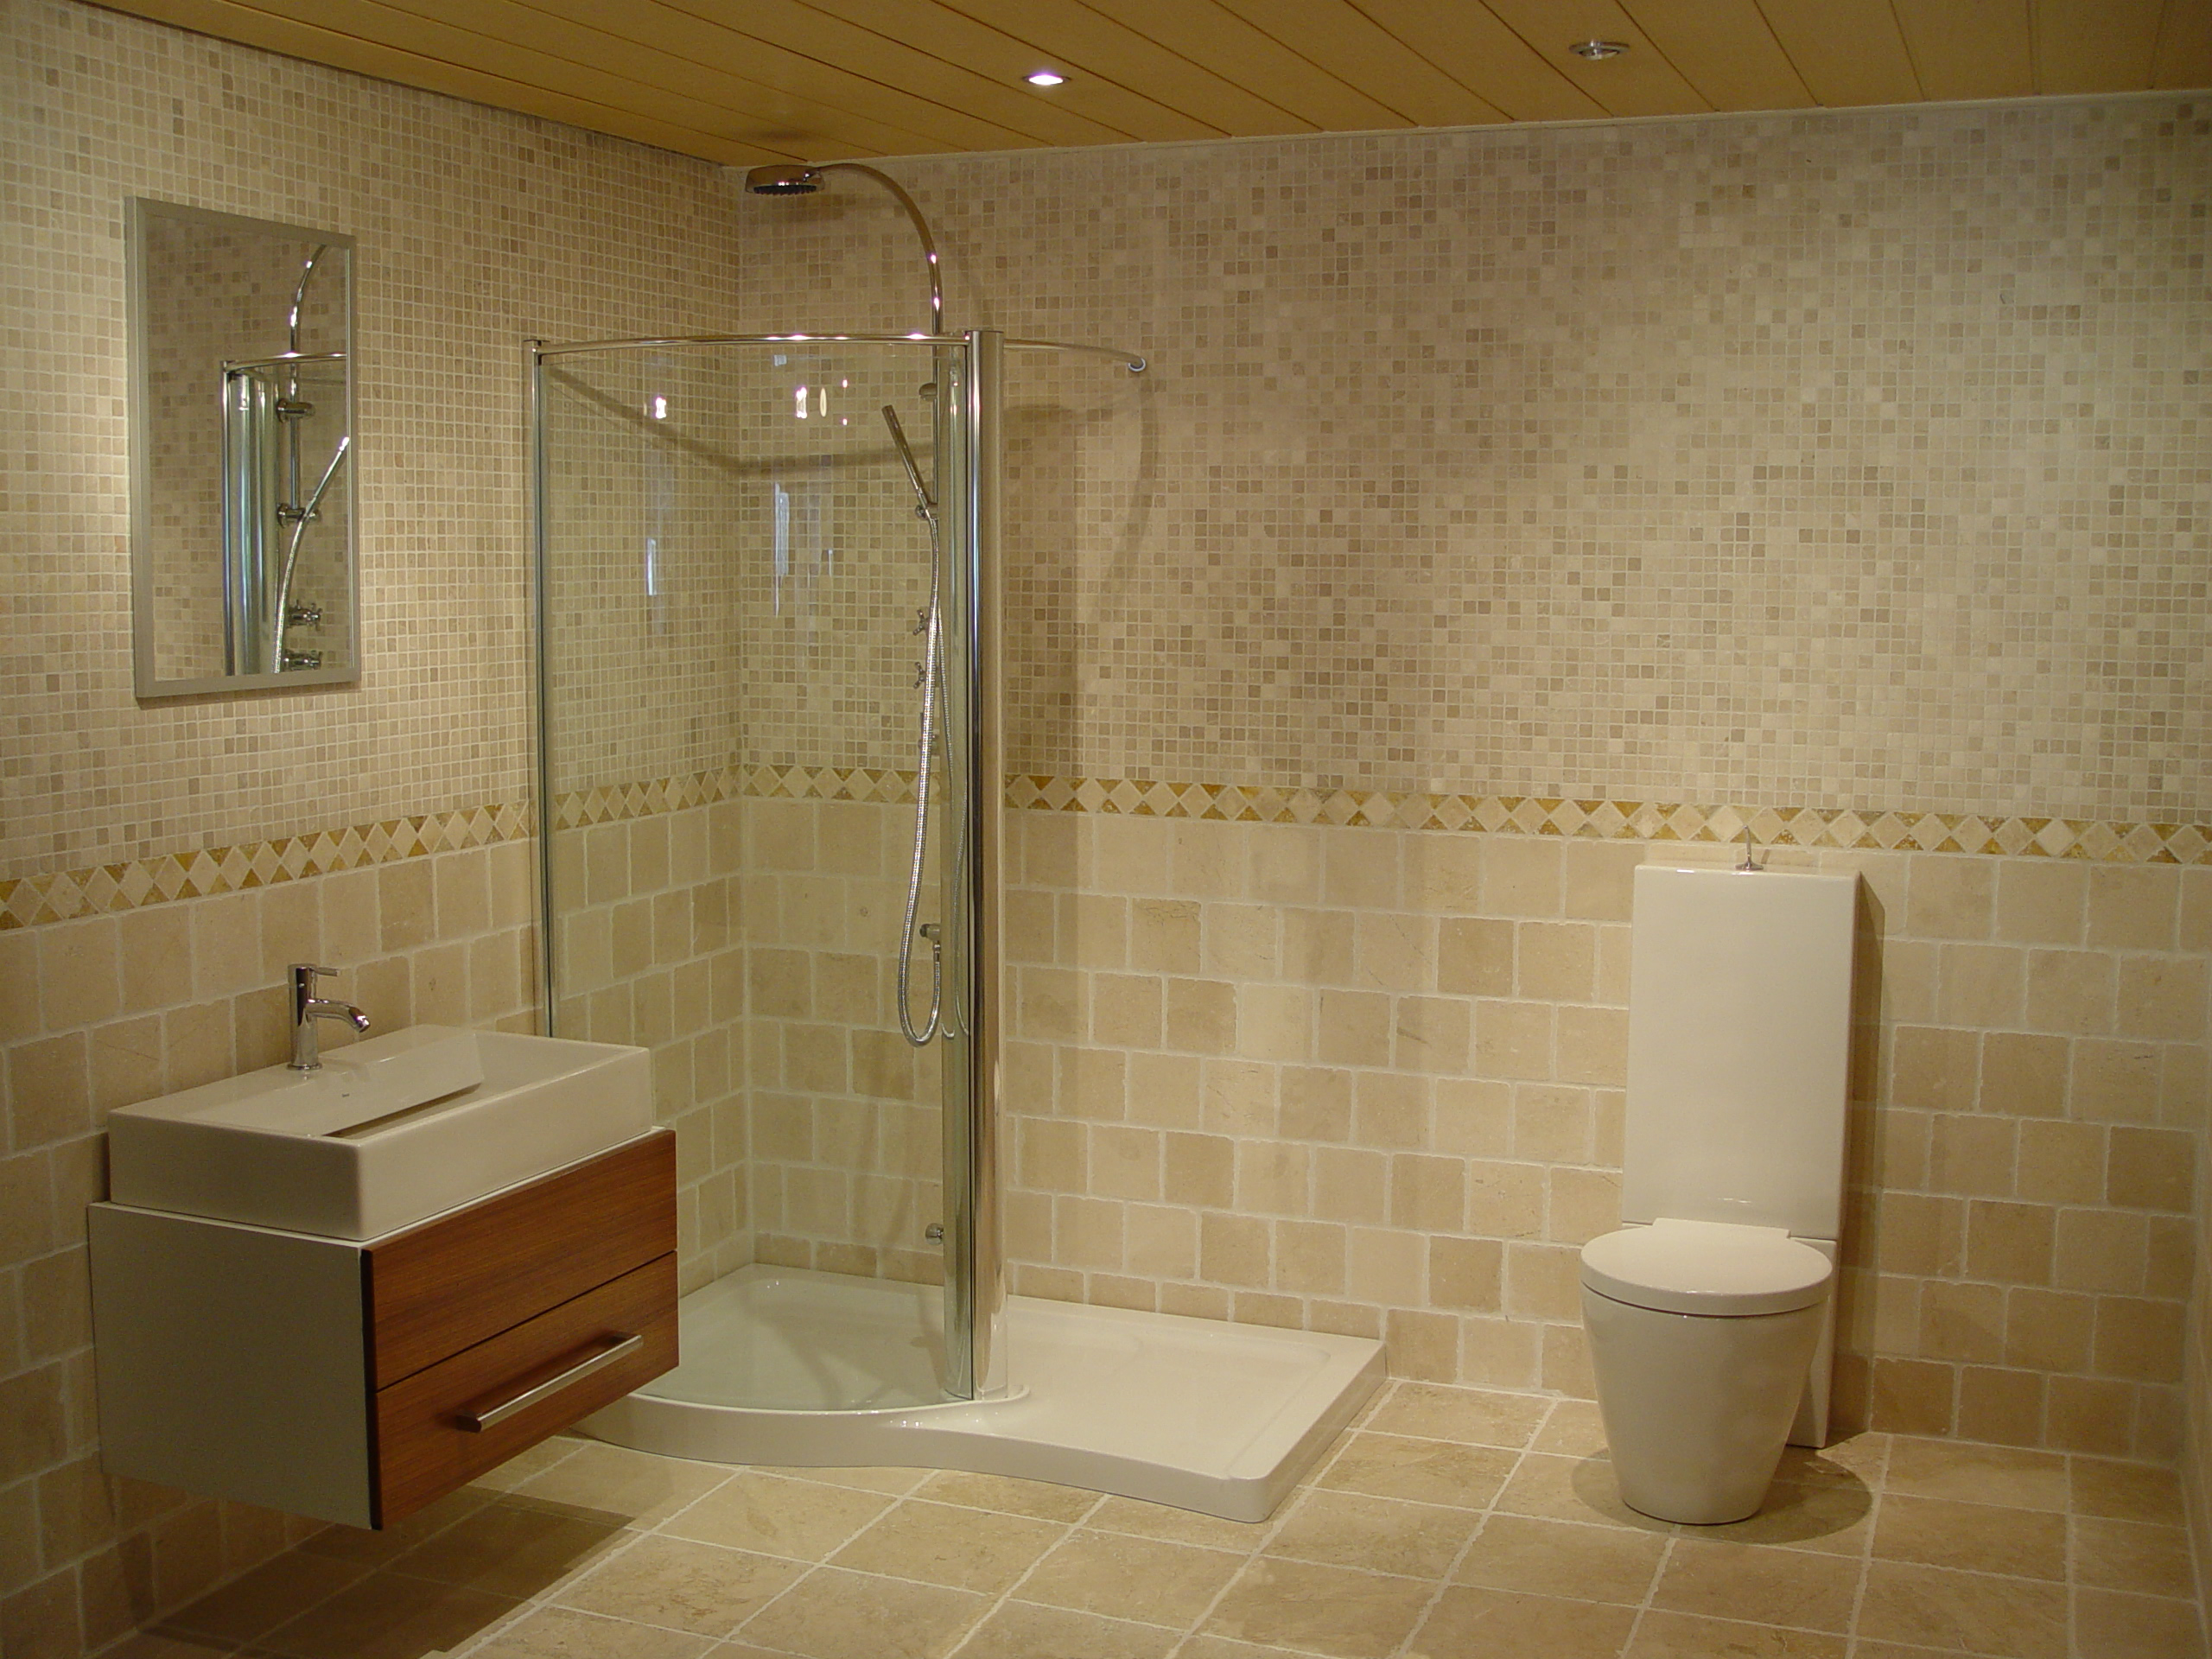 Home design tile bathroom ideas Small bathroom tile design tips